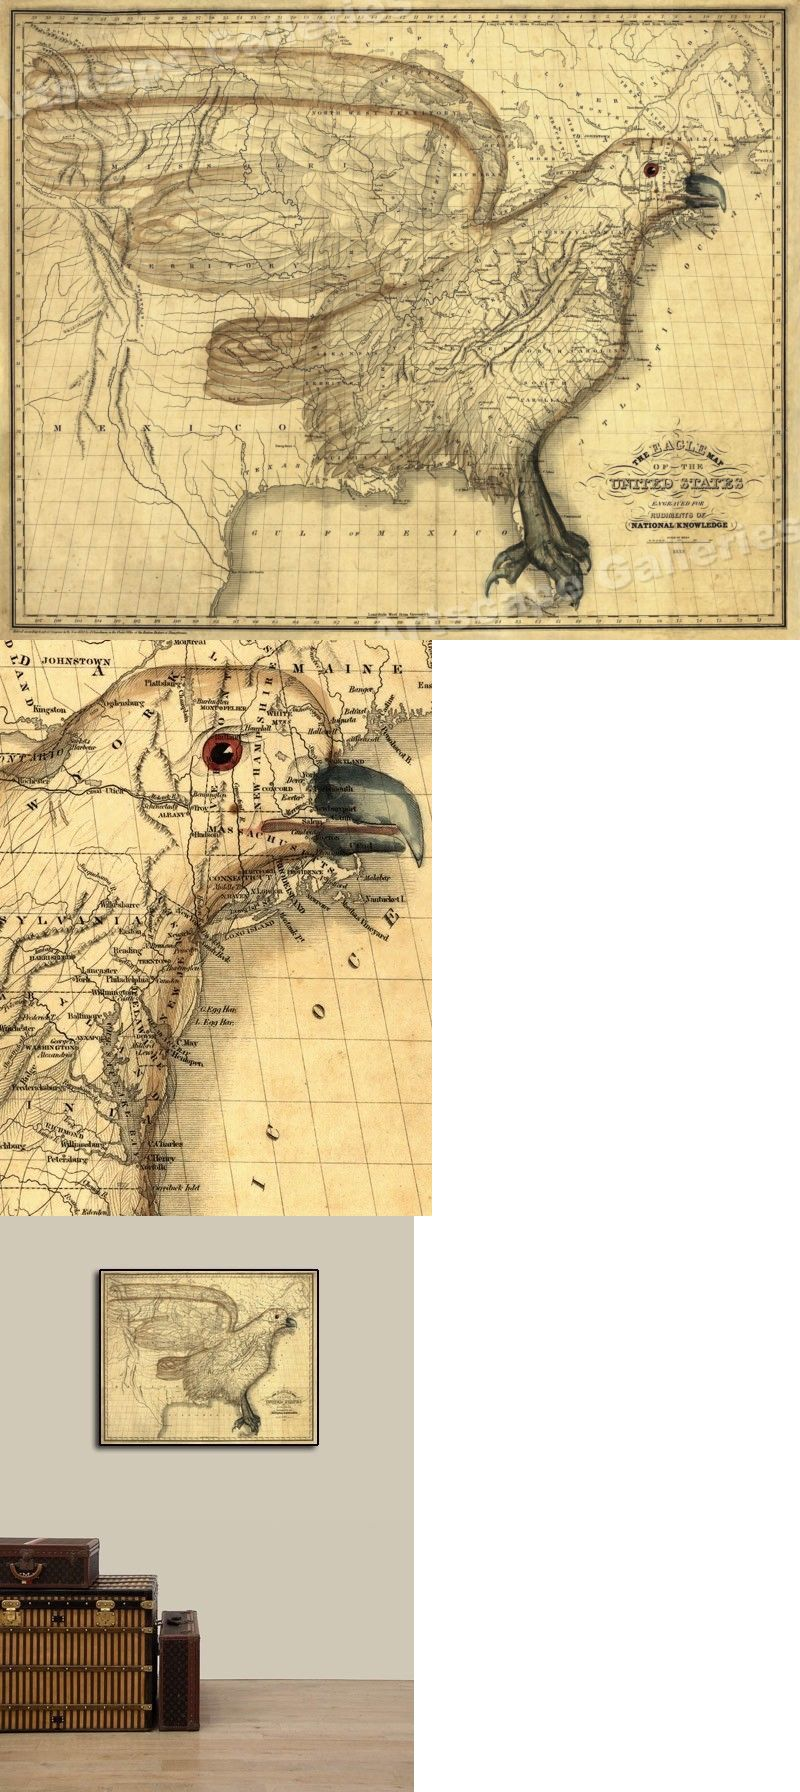 Maps Atlases And Globes 37958 1830s Eagle Map Of The United States - Early-us-maps